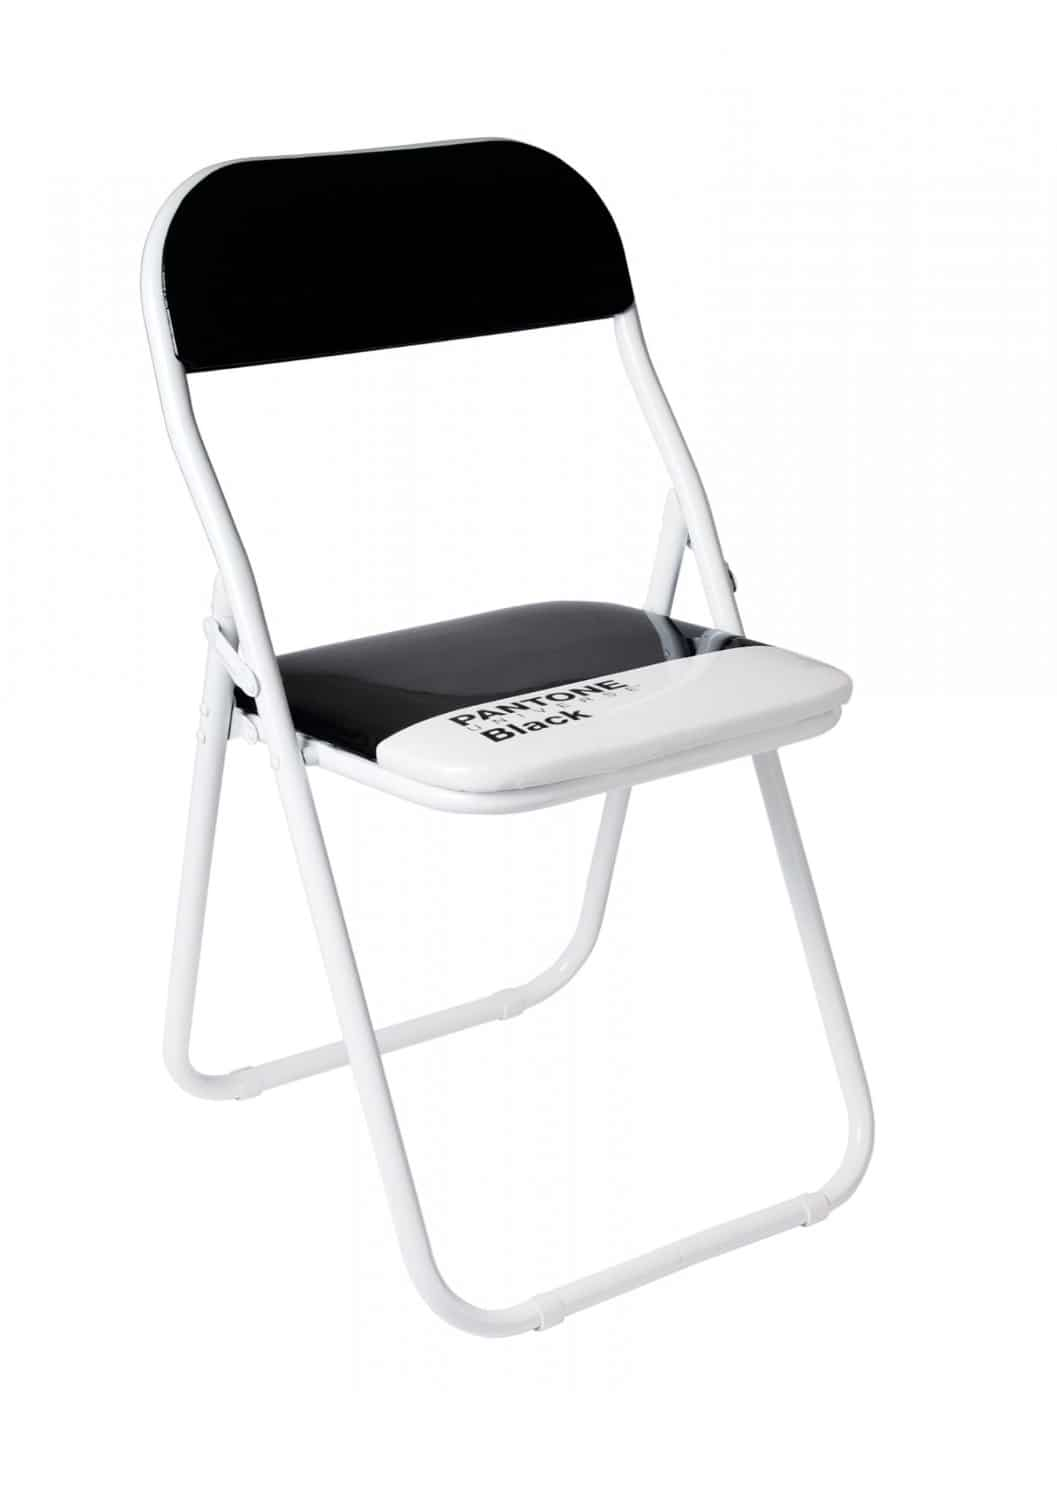 Seletti Pantone Chair Black